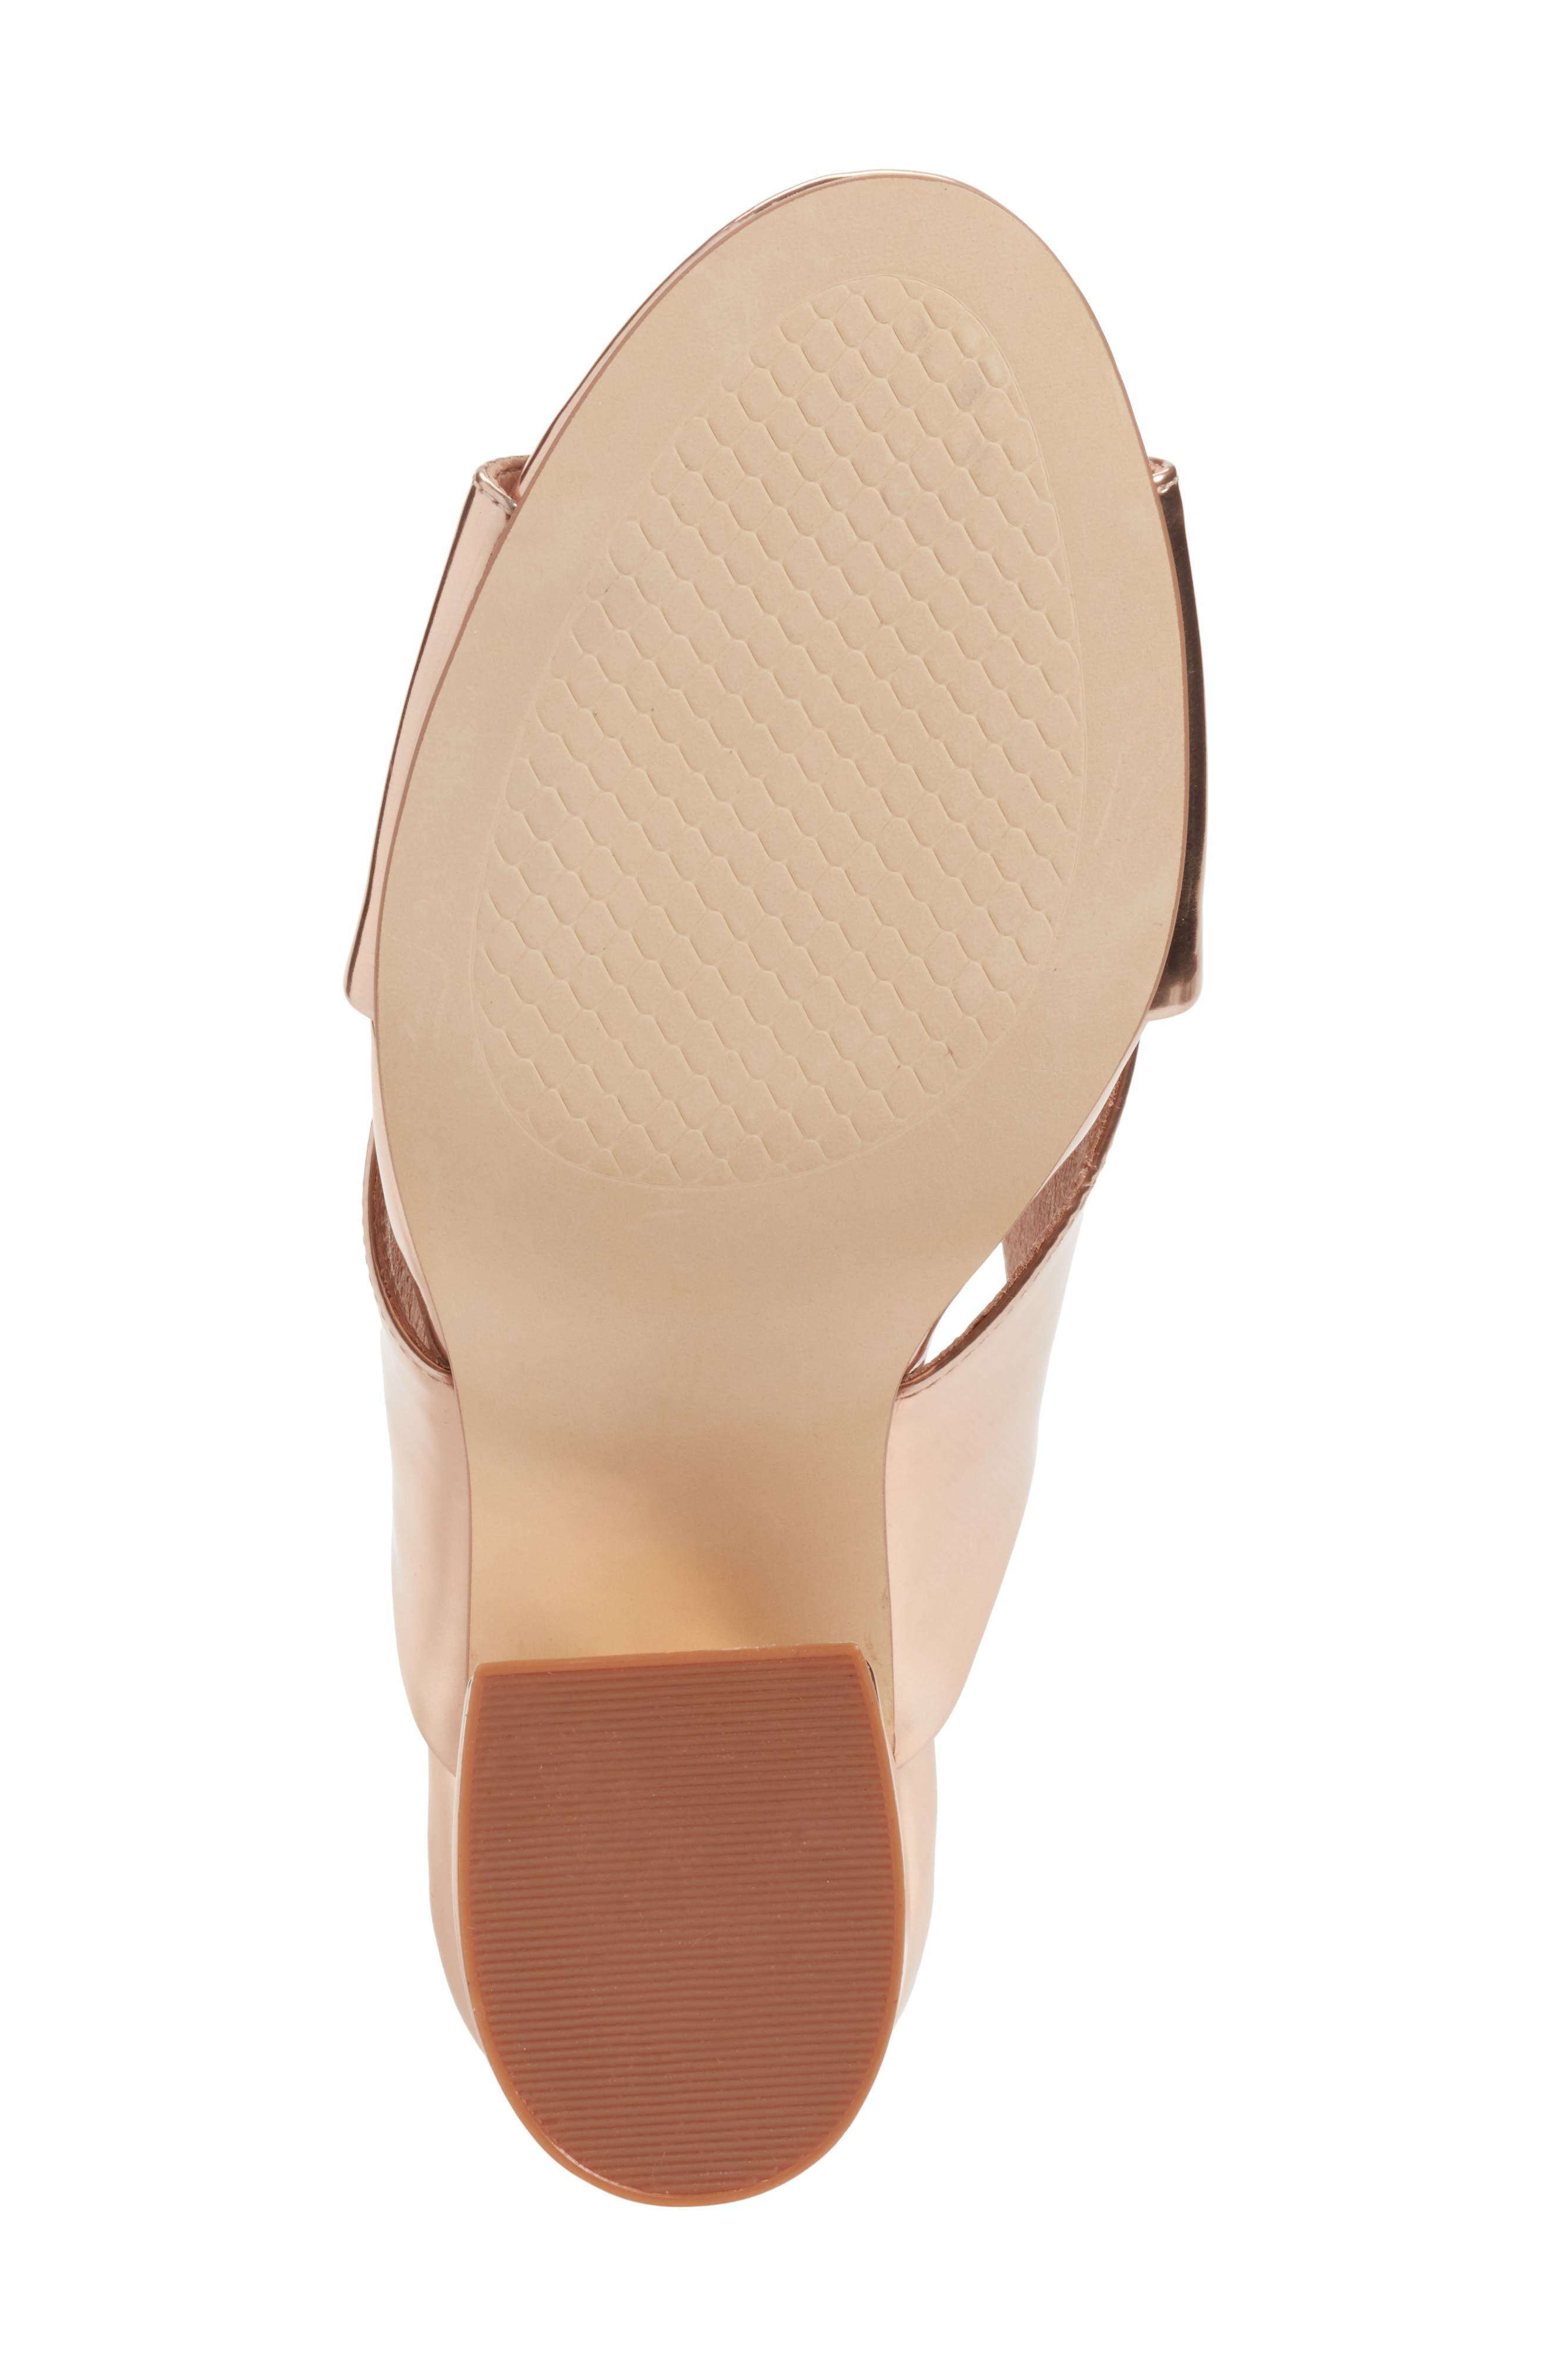 Cammie Block Heel Sandal,                             Alternate thumbnail 6, color,                             Rosegold Metallic Faux Leather